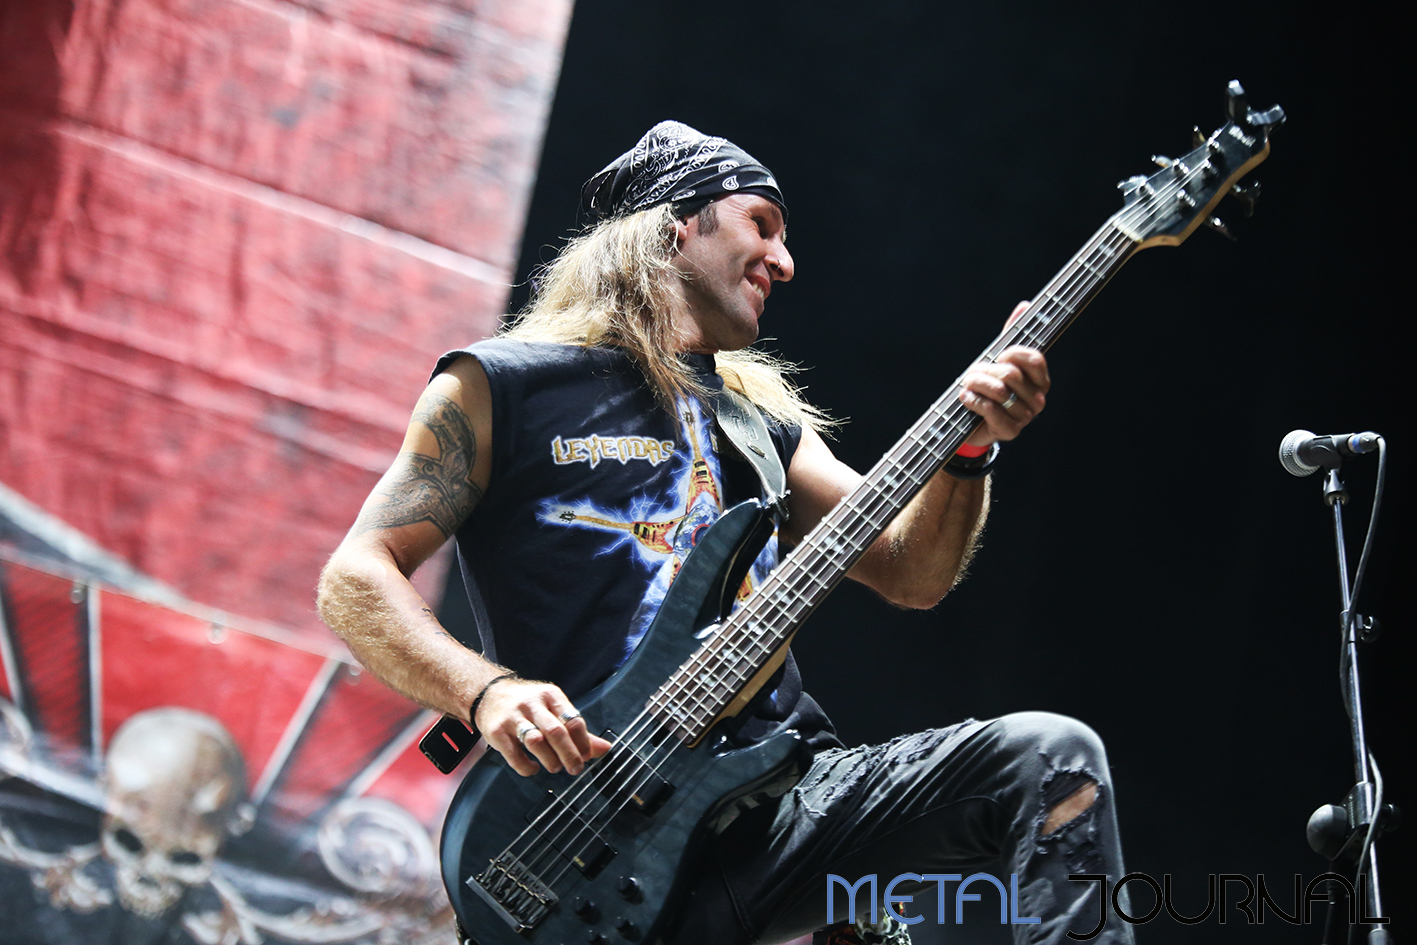 obus - leyendas del rock 2019 metal journal pic 7